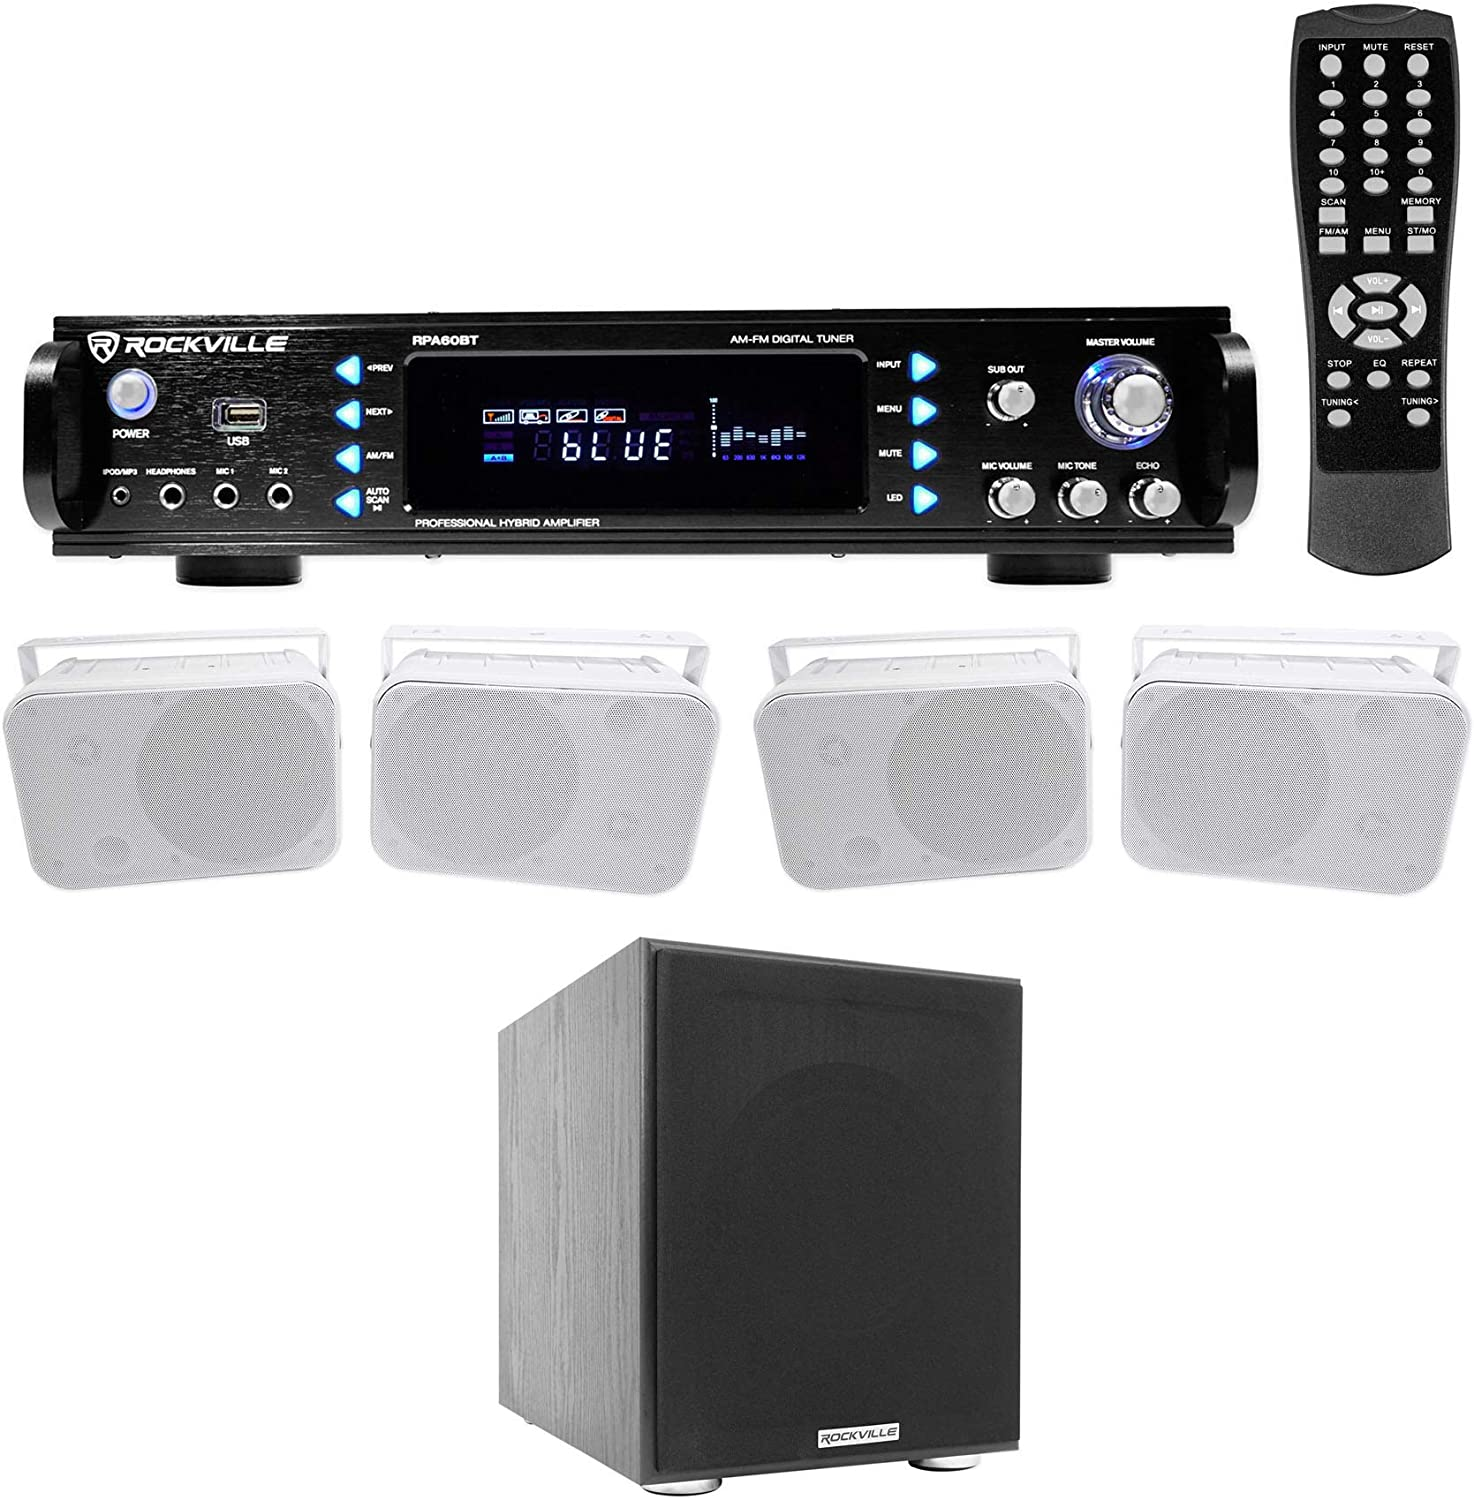 Rockville 1000w Home Theater Bluetooth Receiver+(4) 6.5